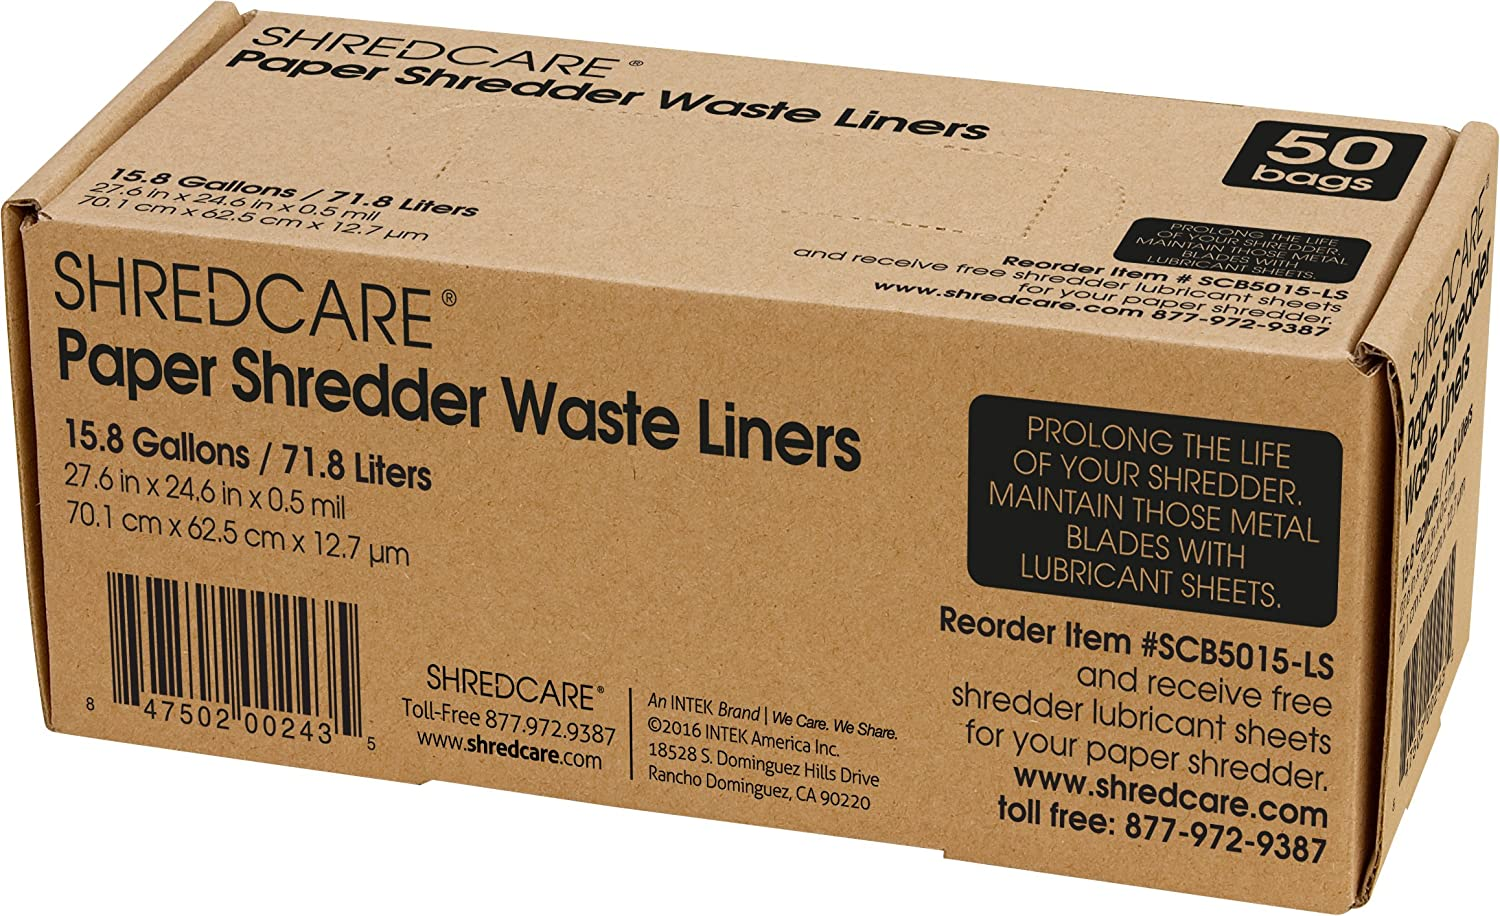 ShredCare Office Waste Bin Trash Max 47% OFF New life Can SCB5015 Liner 50 of Pack